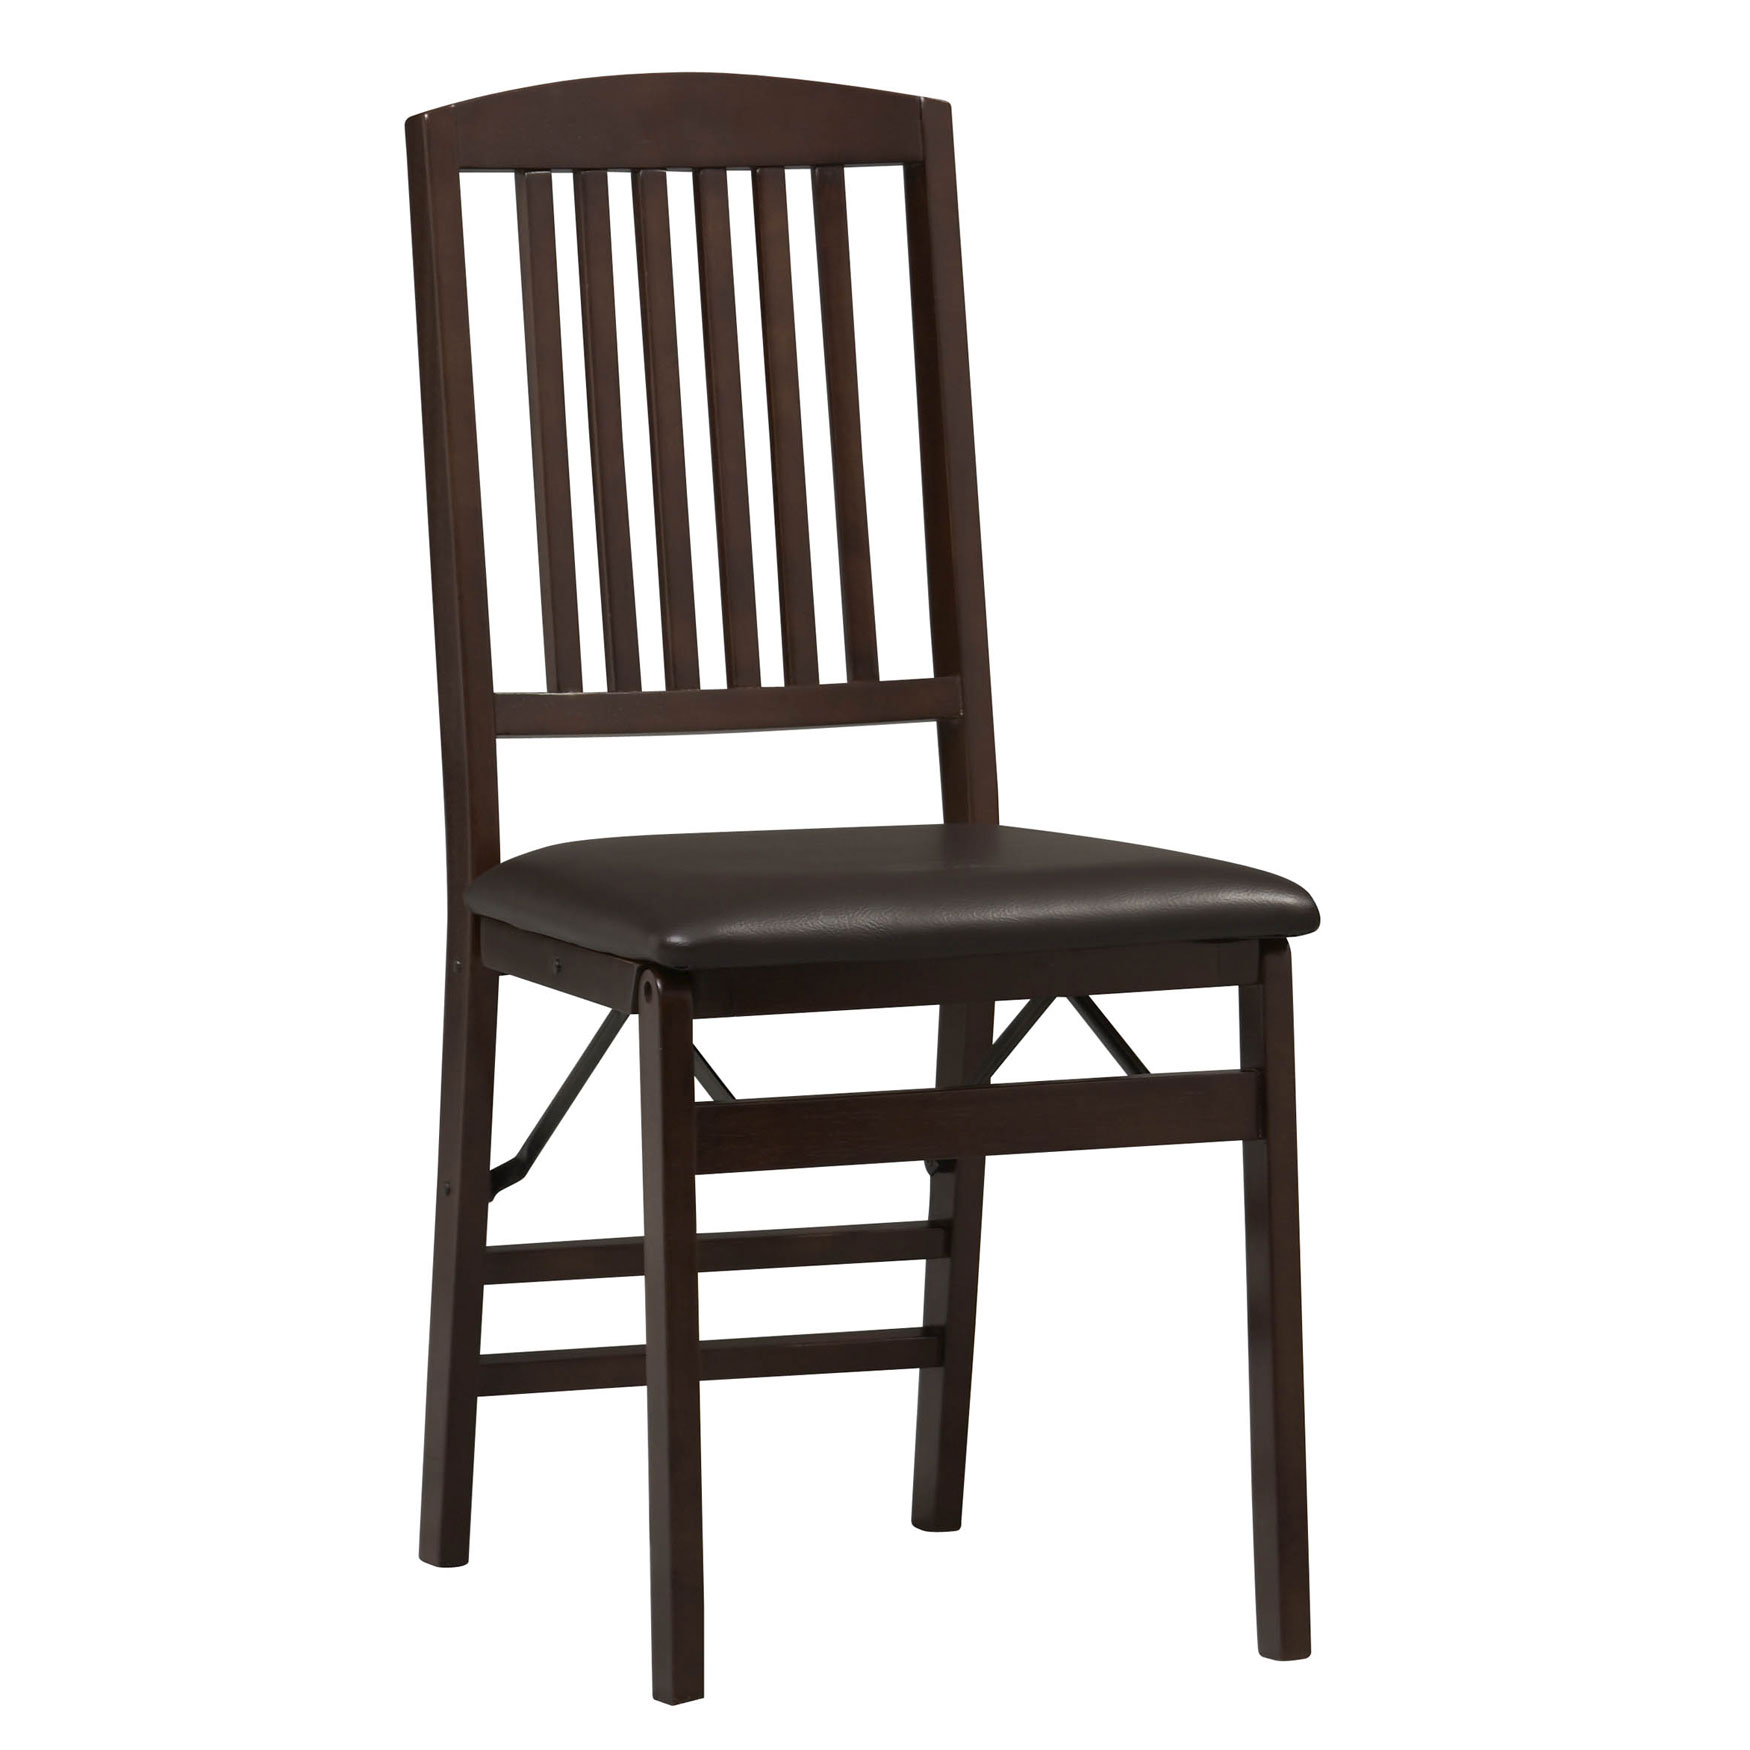 Mission Back Folding Chair, ESPRESSO